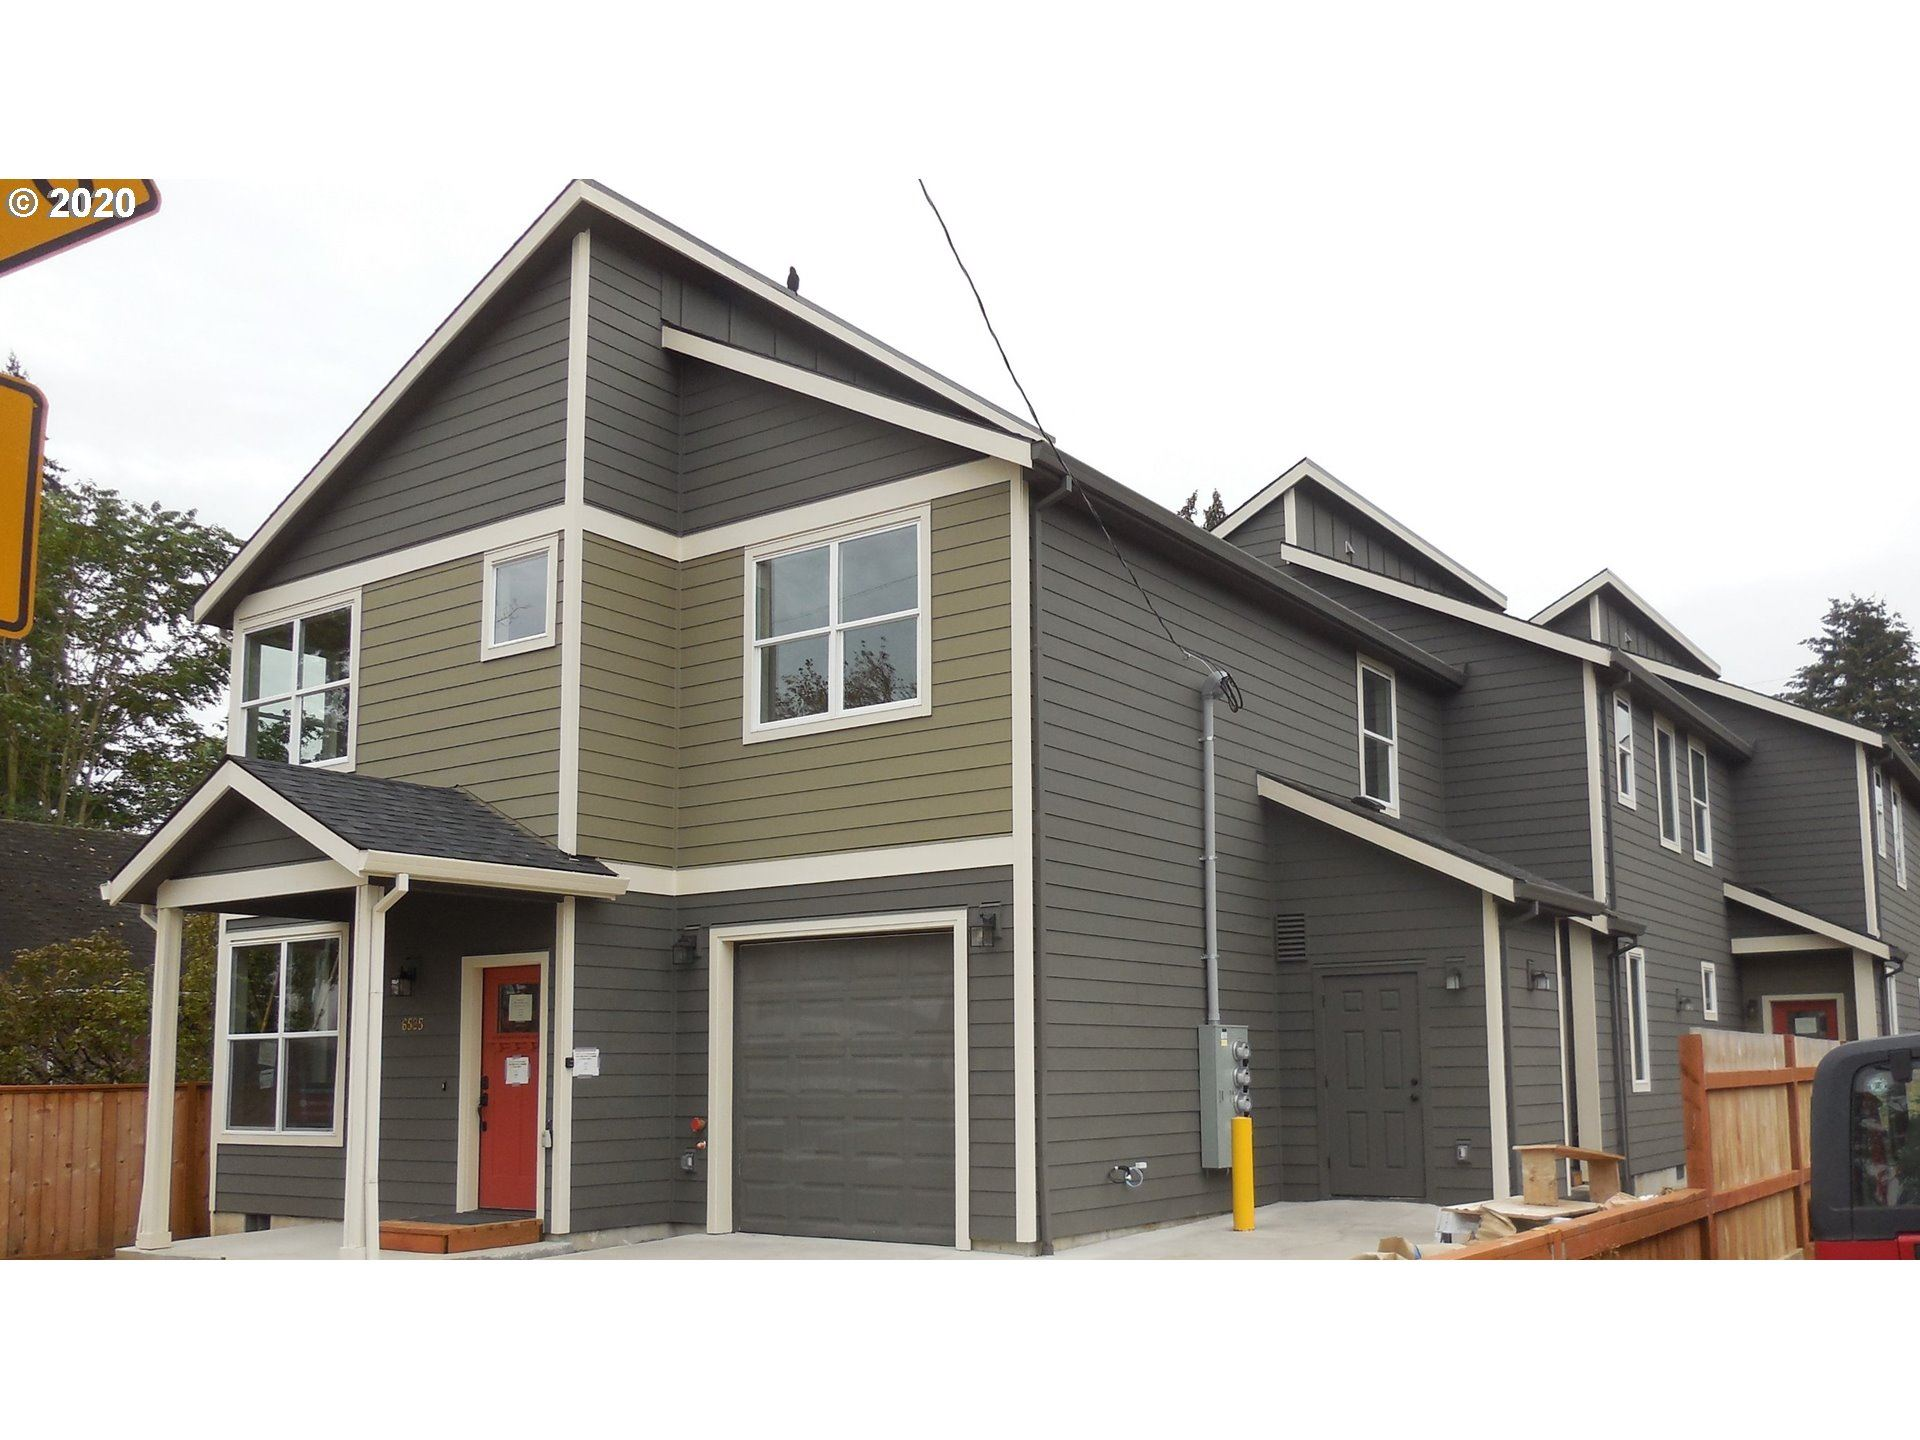 6521 SE 78TH AVE, Portland, OR 97206 - MLS#: 20438600